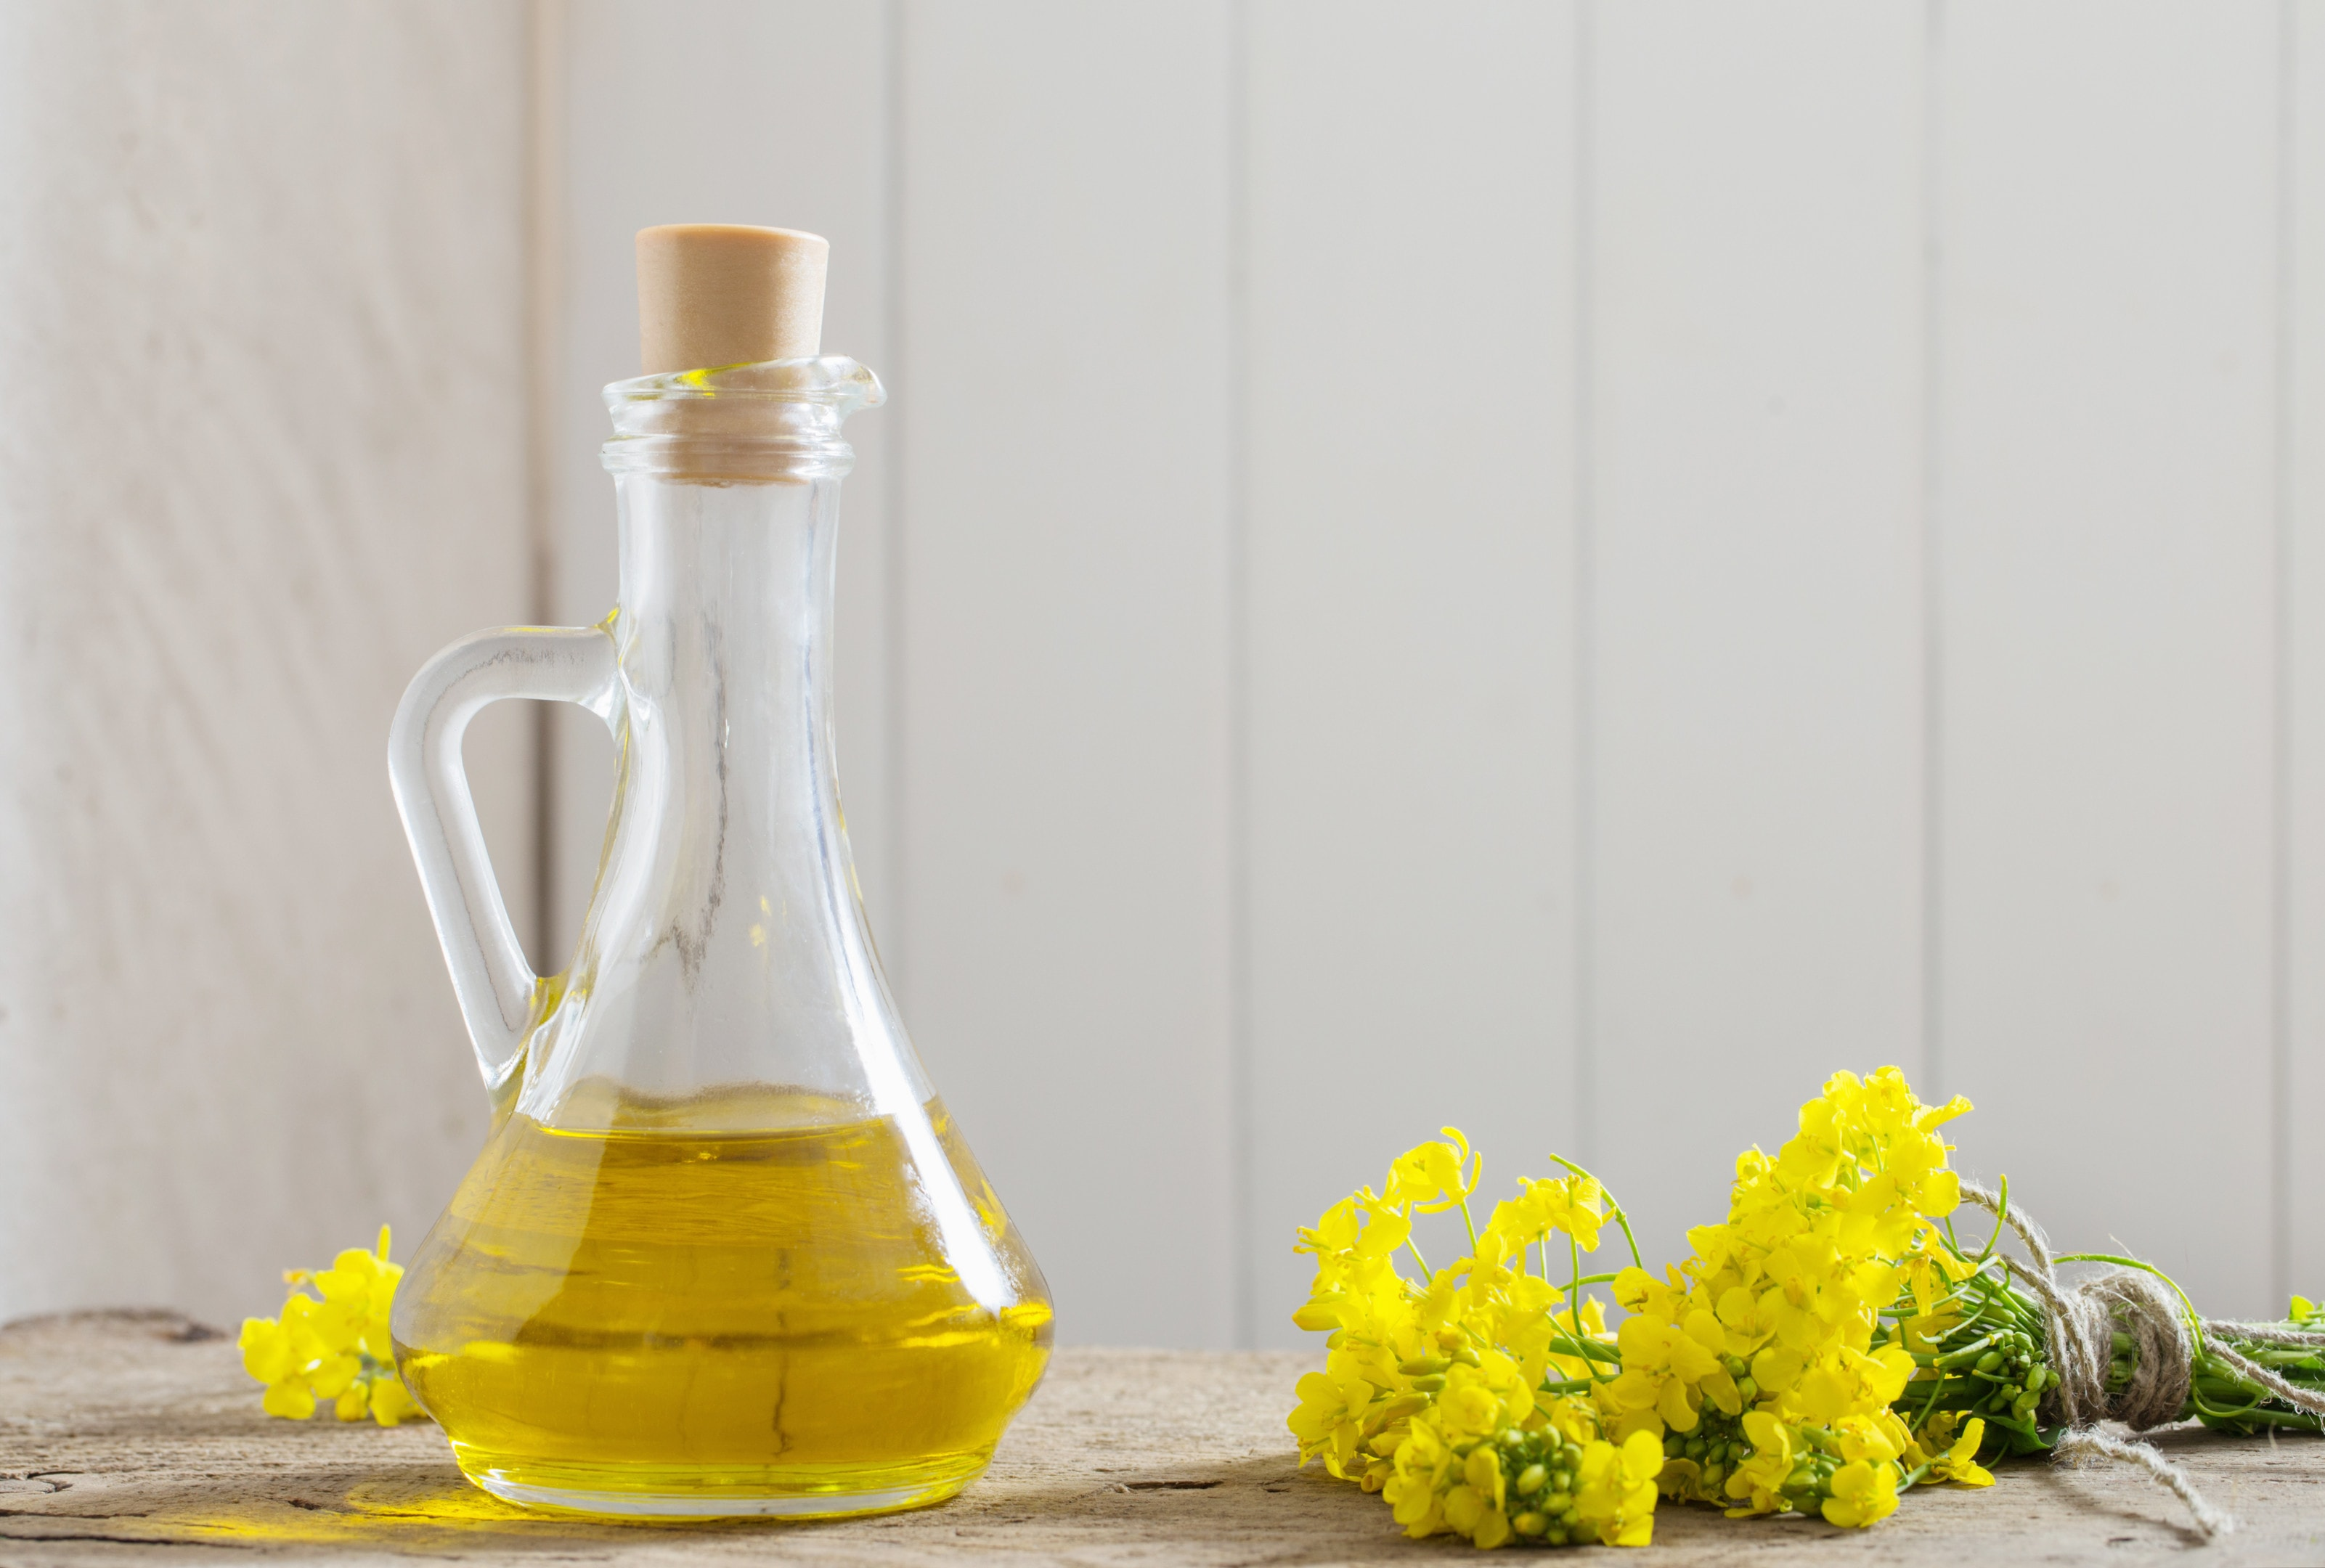 Canola oil with rape flowers on wooden table